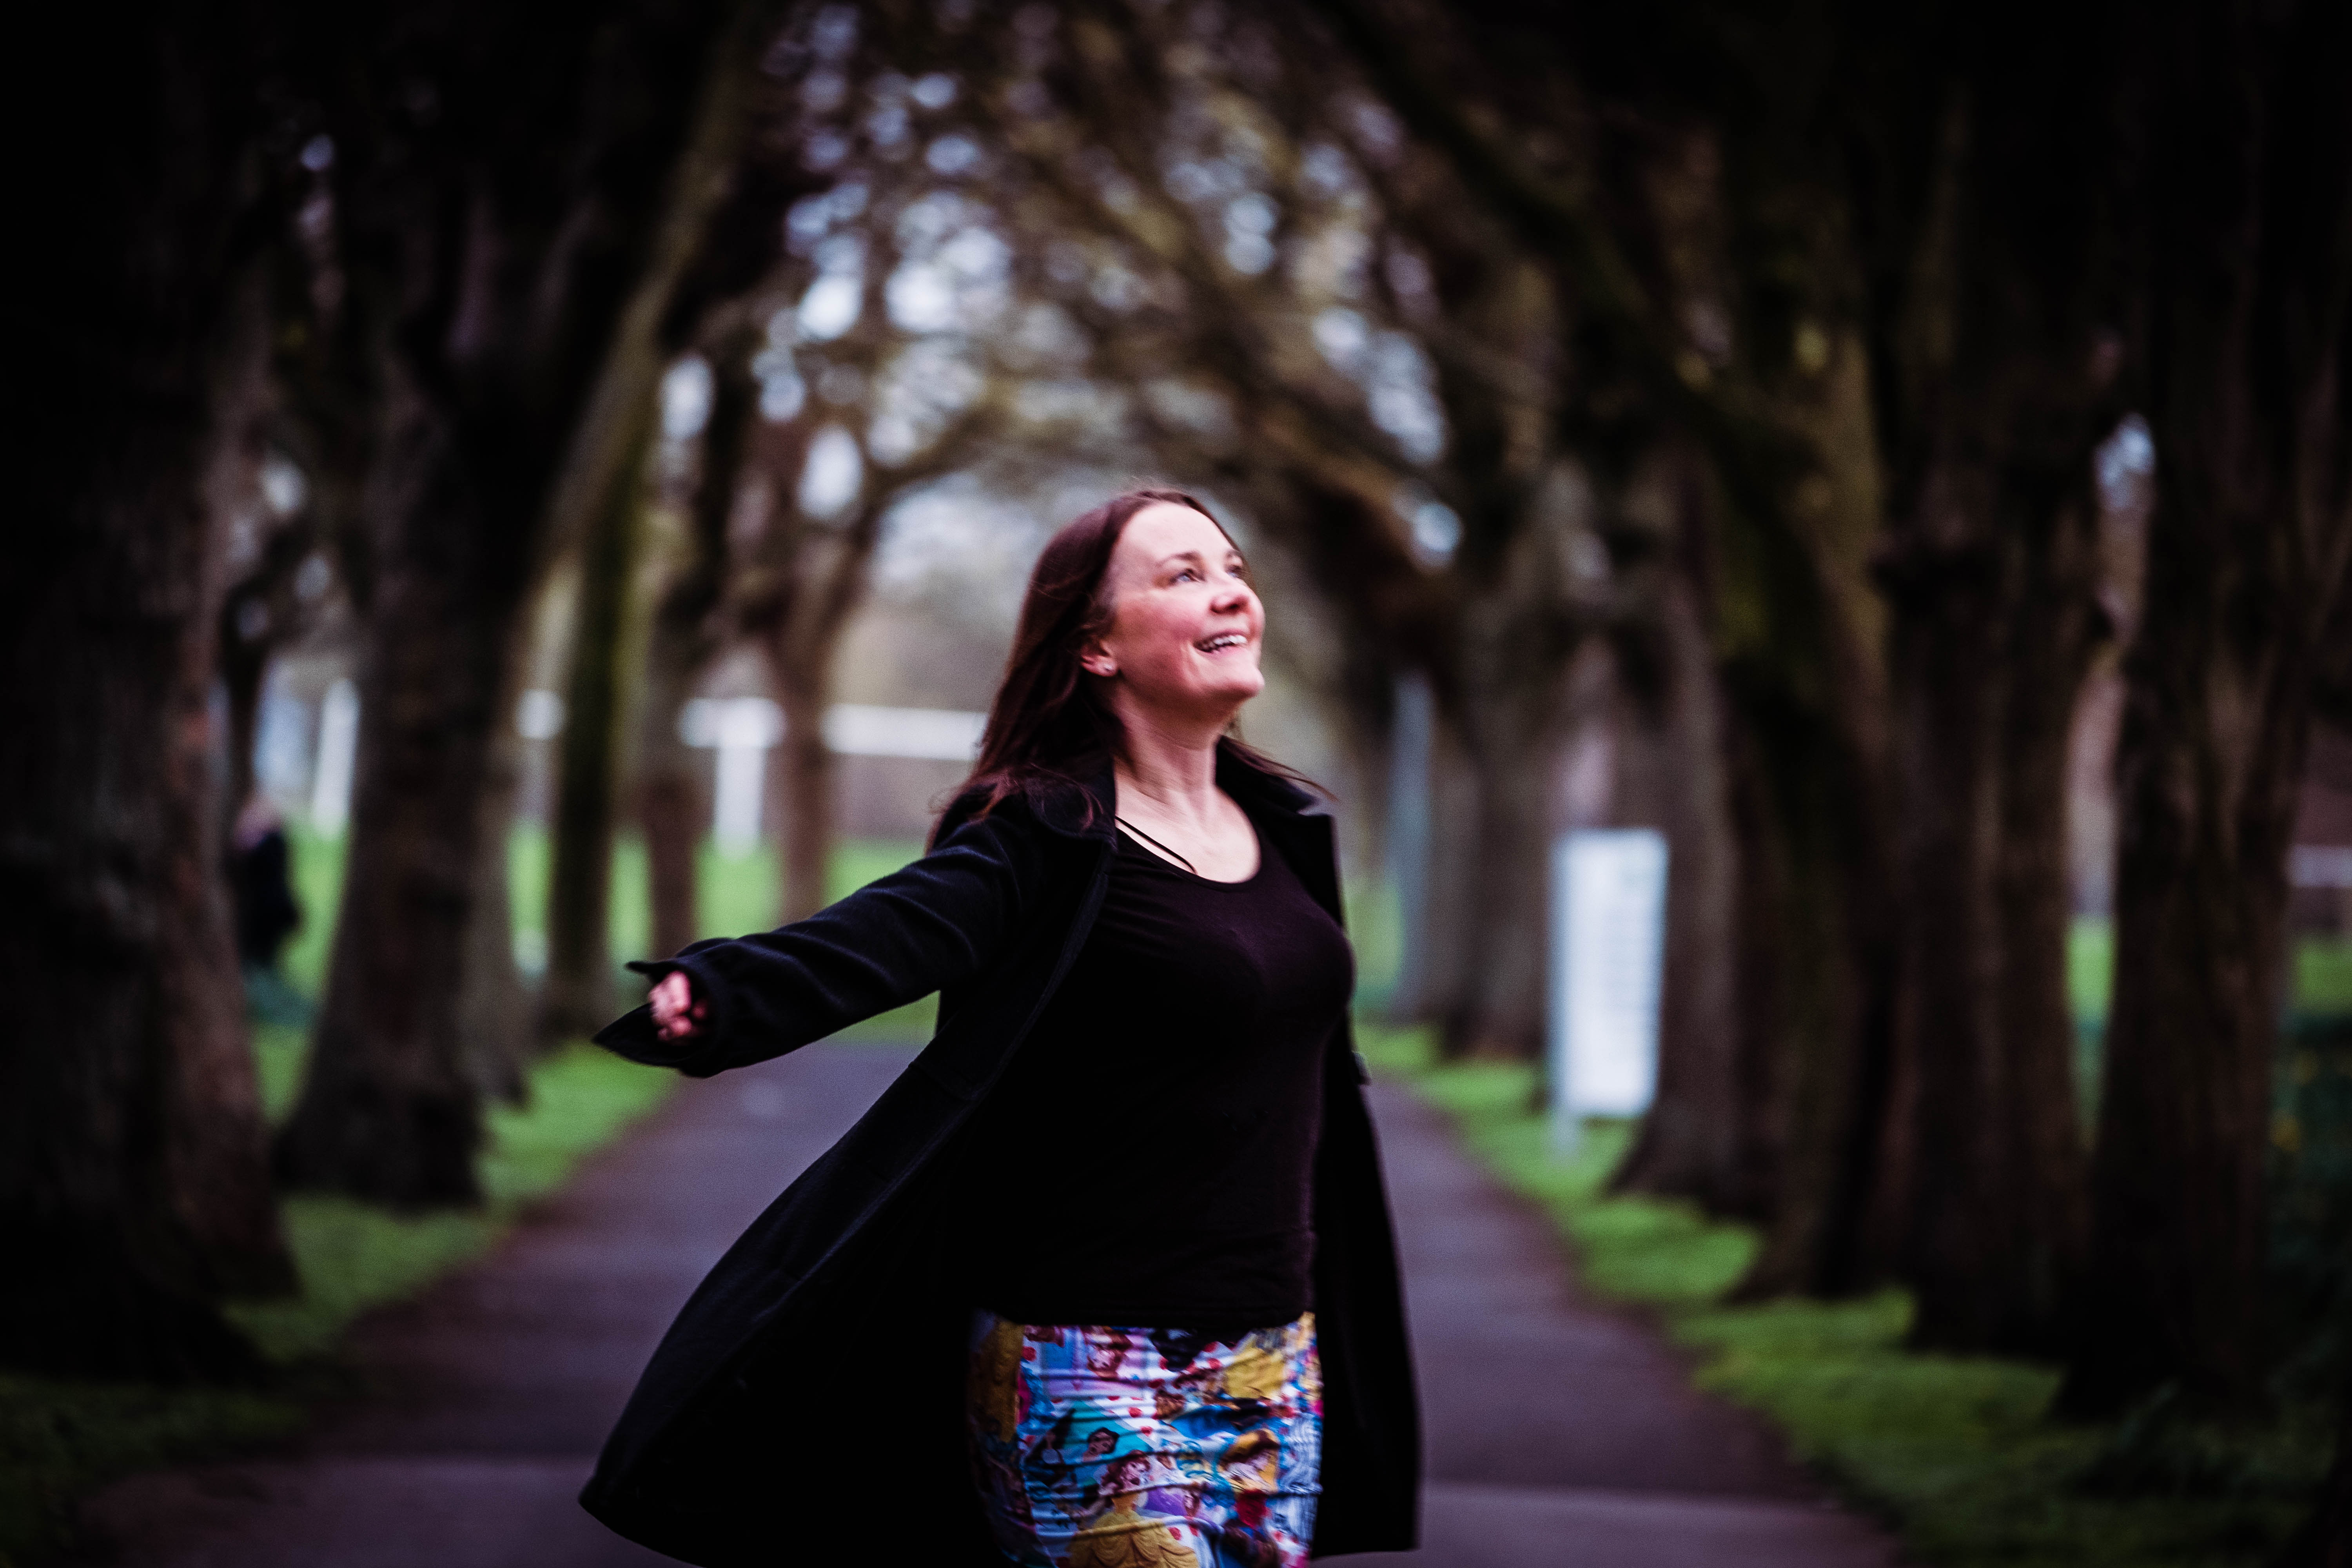 Edel Leahy, The trees of Fairview, Portraits, Portrait photography, portrait photographer Dublin, Faces of Fairview